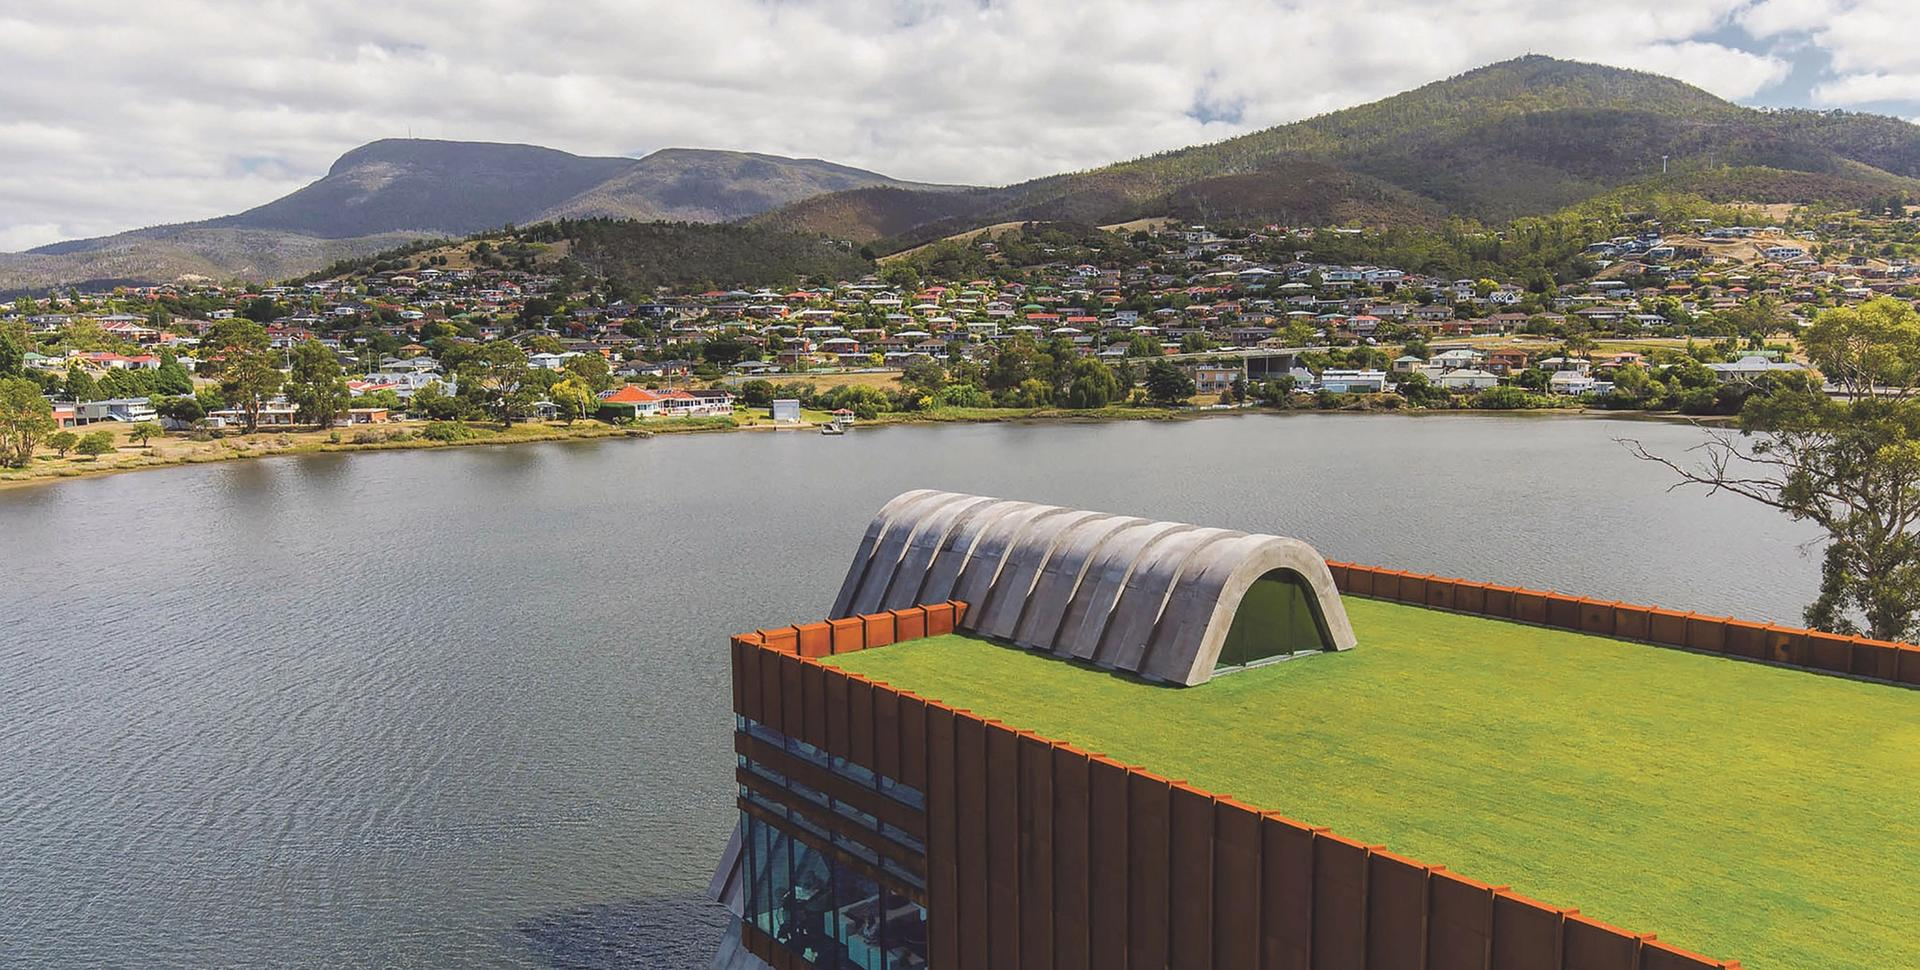 The Pharos wing at the Museum of Old and New Art (Mona) in Hobart, Tasmania, founded by the  professional gambler and businessman David Walsh Photo: Mona/Jesse Hunniford; courtesy of Mona